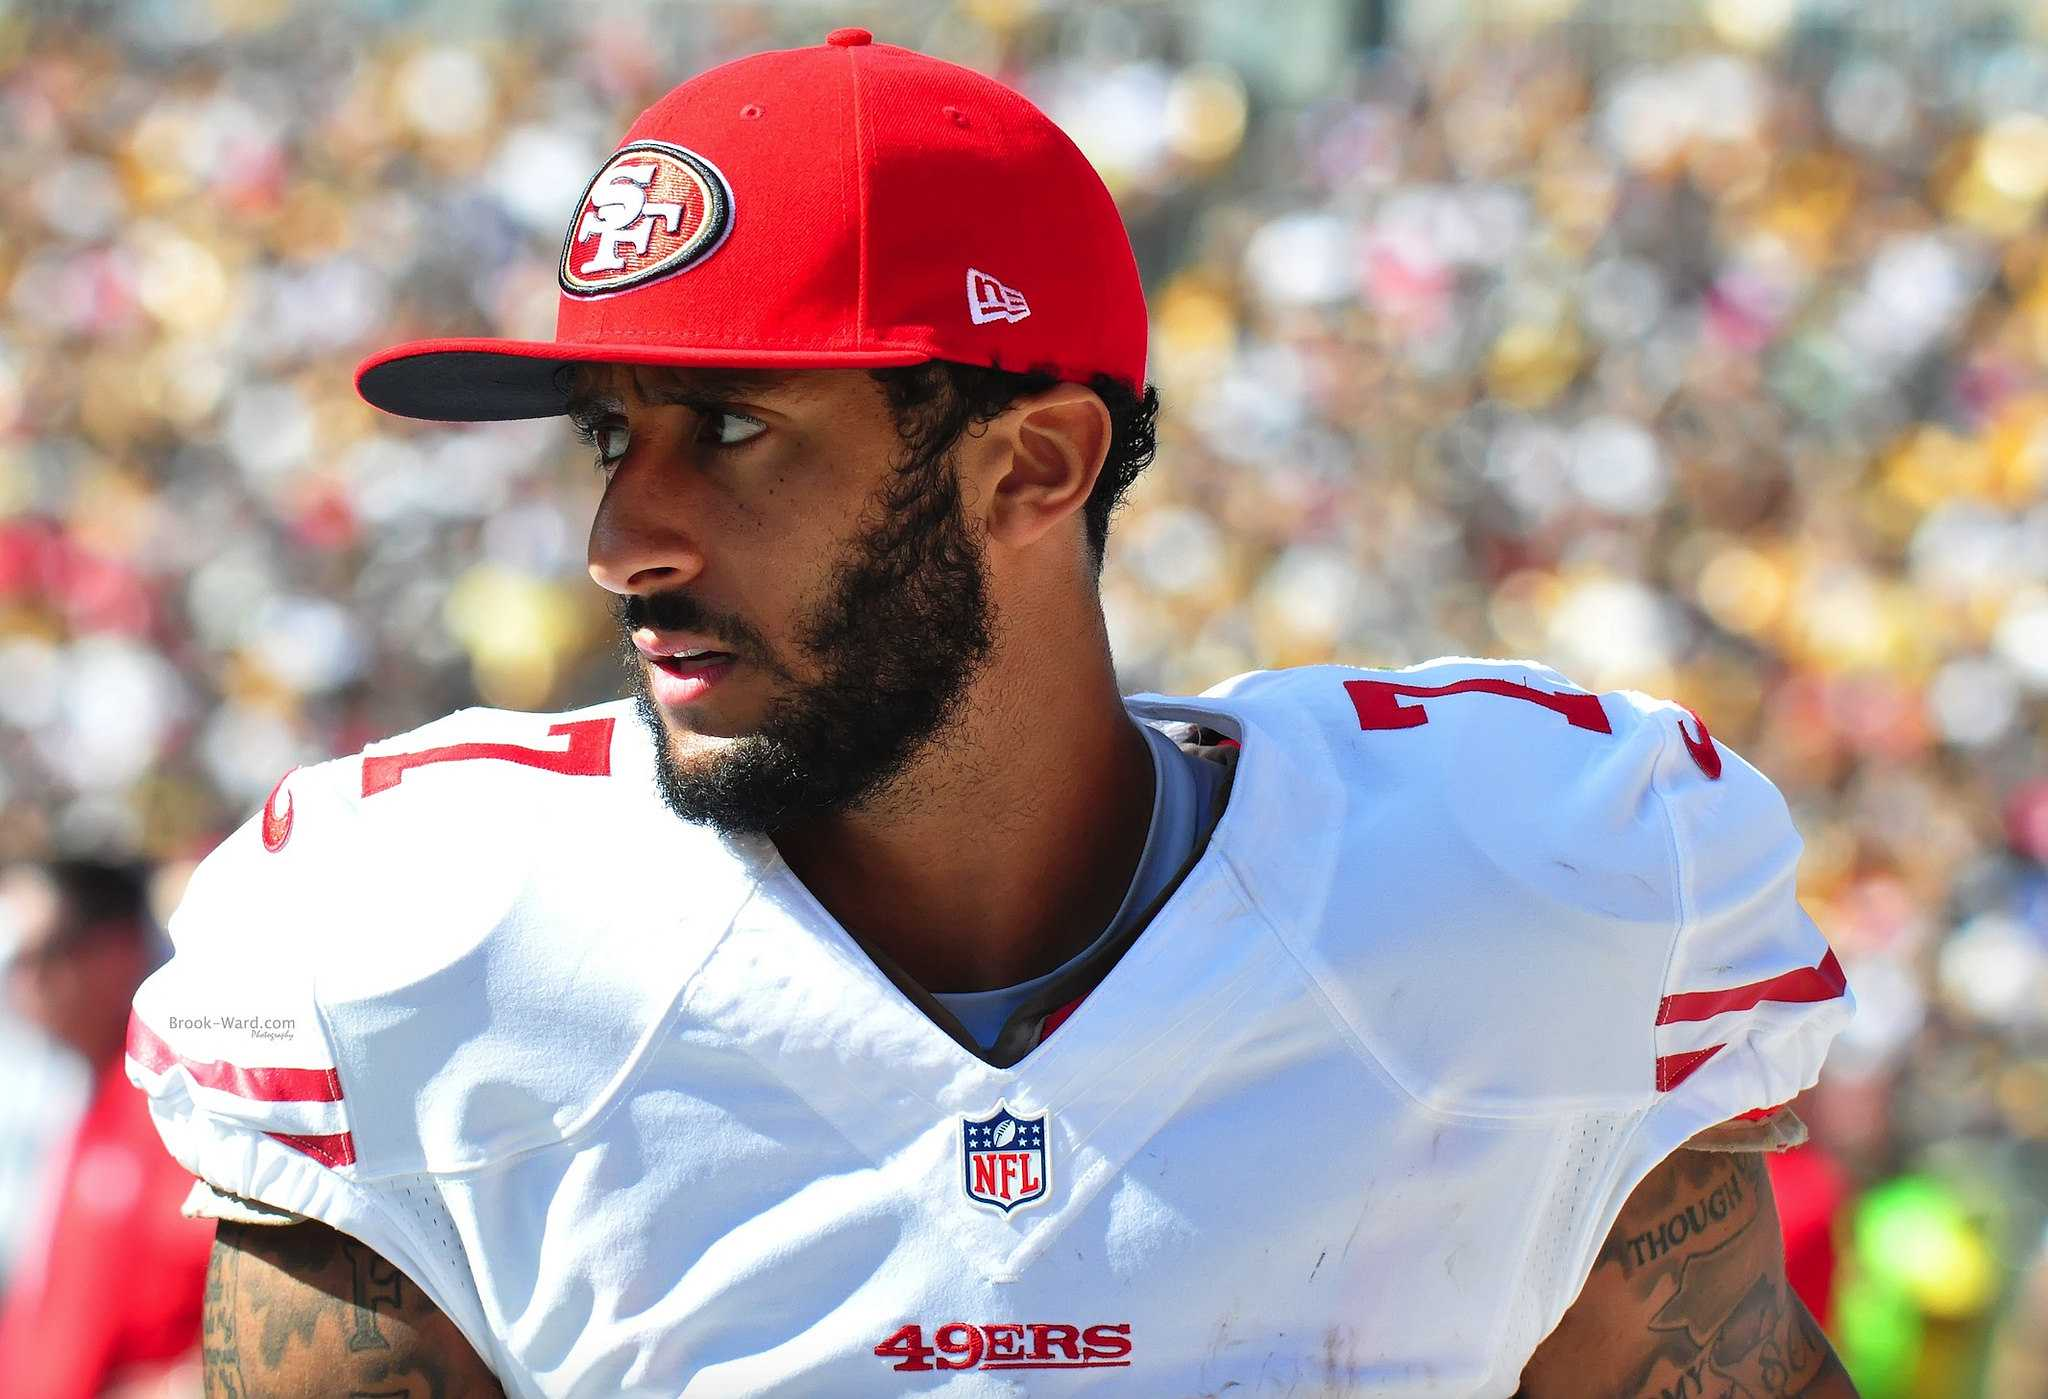 Refusing to stand during the national anthem, Colin Kaepernick kicked-off controversy in late Aug. Other athletes have joined Kaepernick in protest of racial inequality in the U.S., including fellow San Francisco 49er Eric Reid.